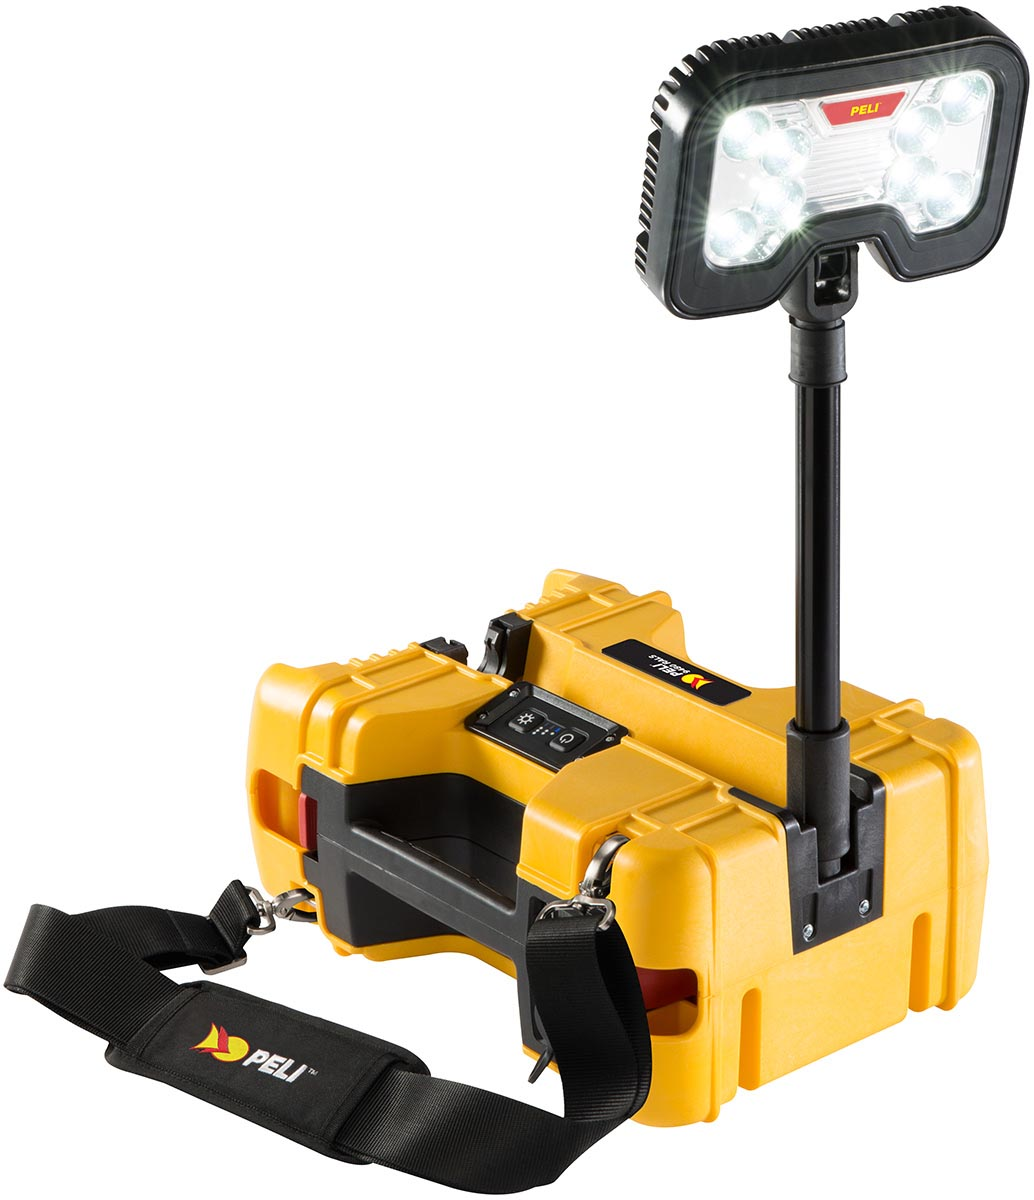 pelican 9480 mobile led emergency work light